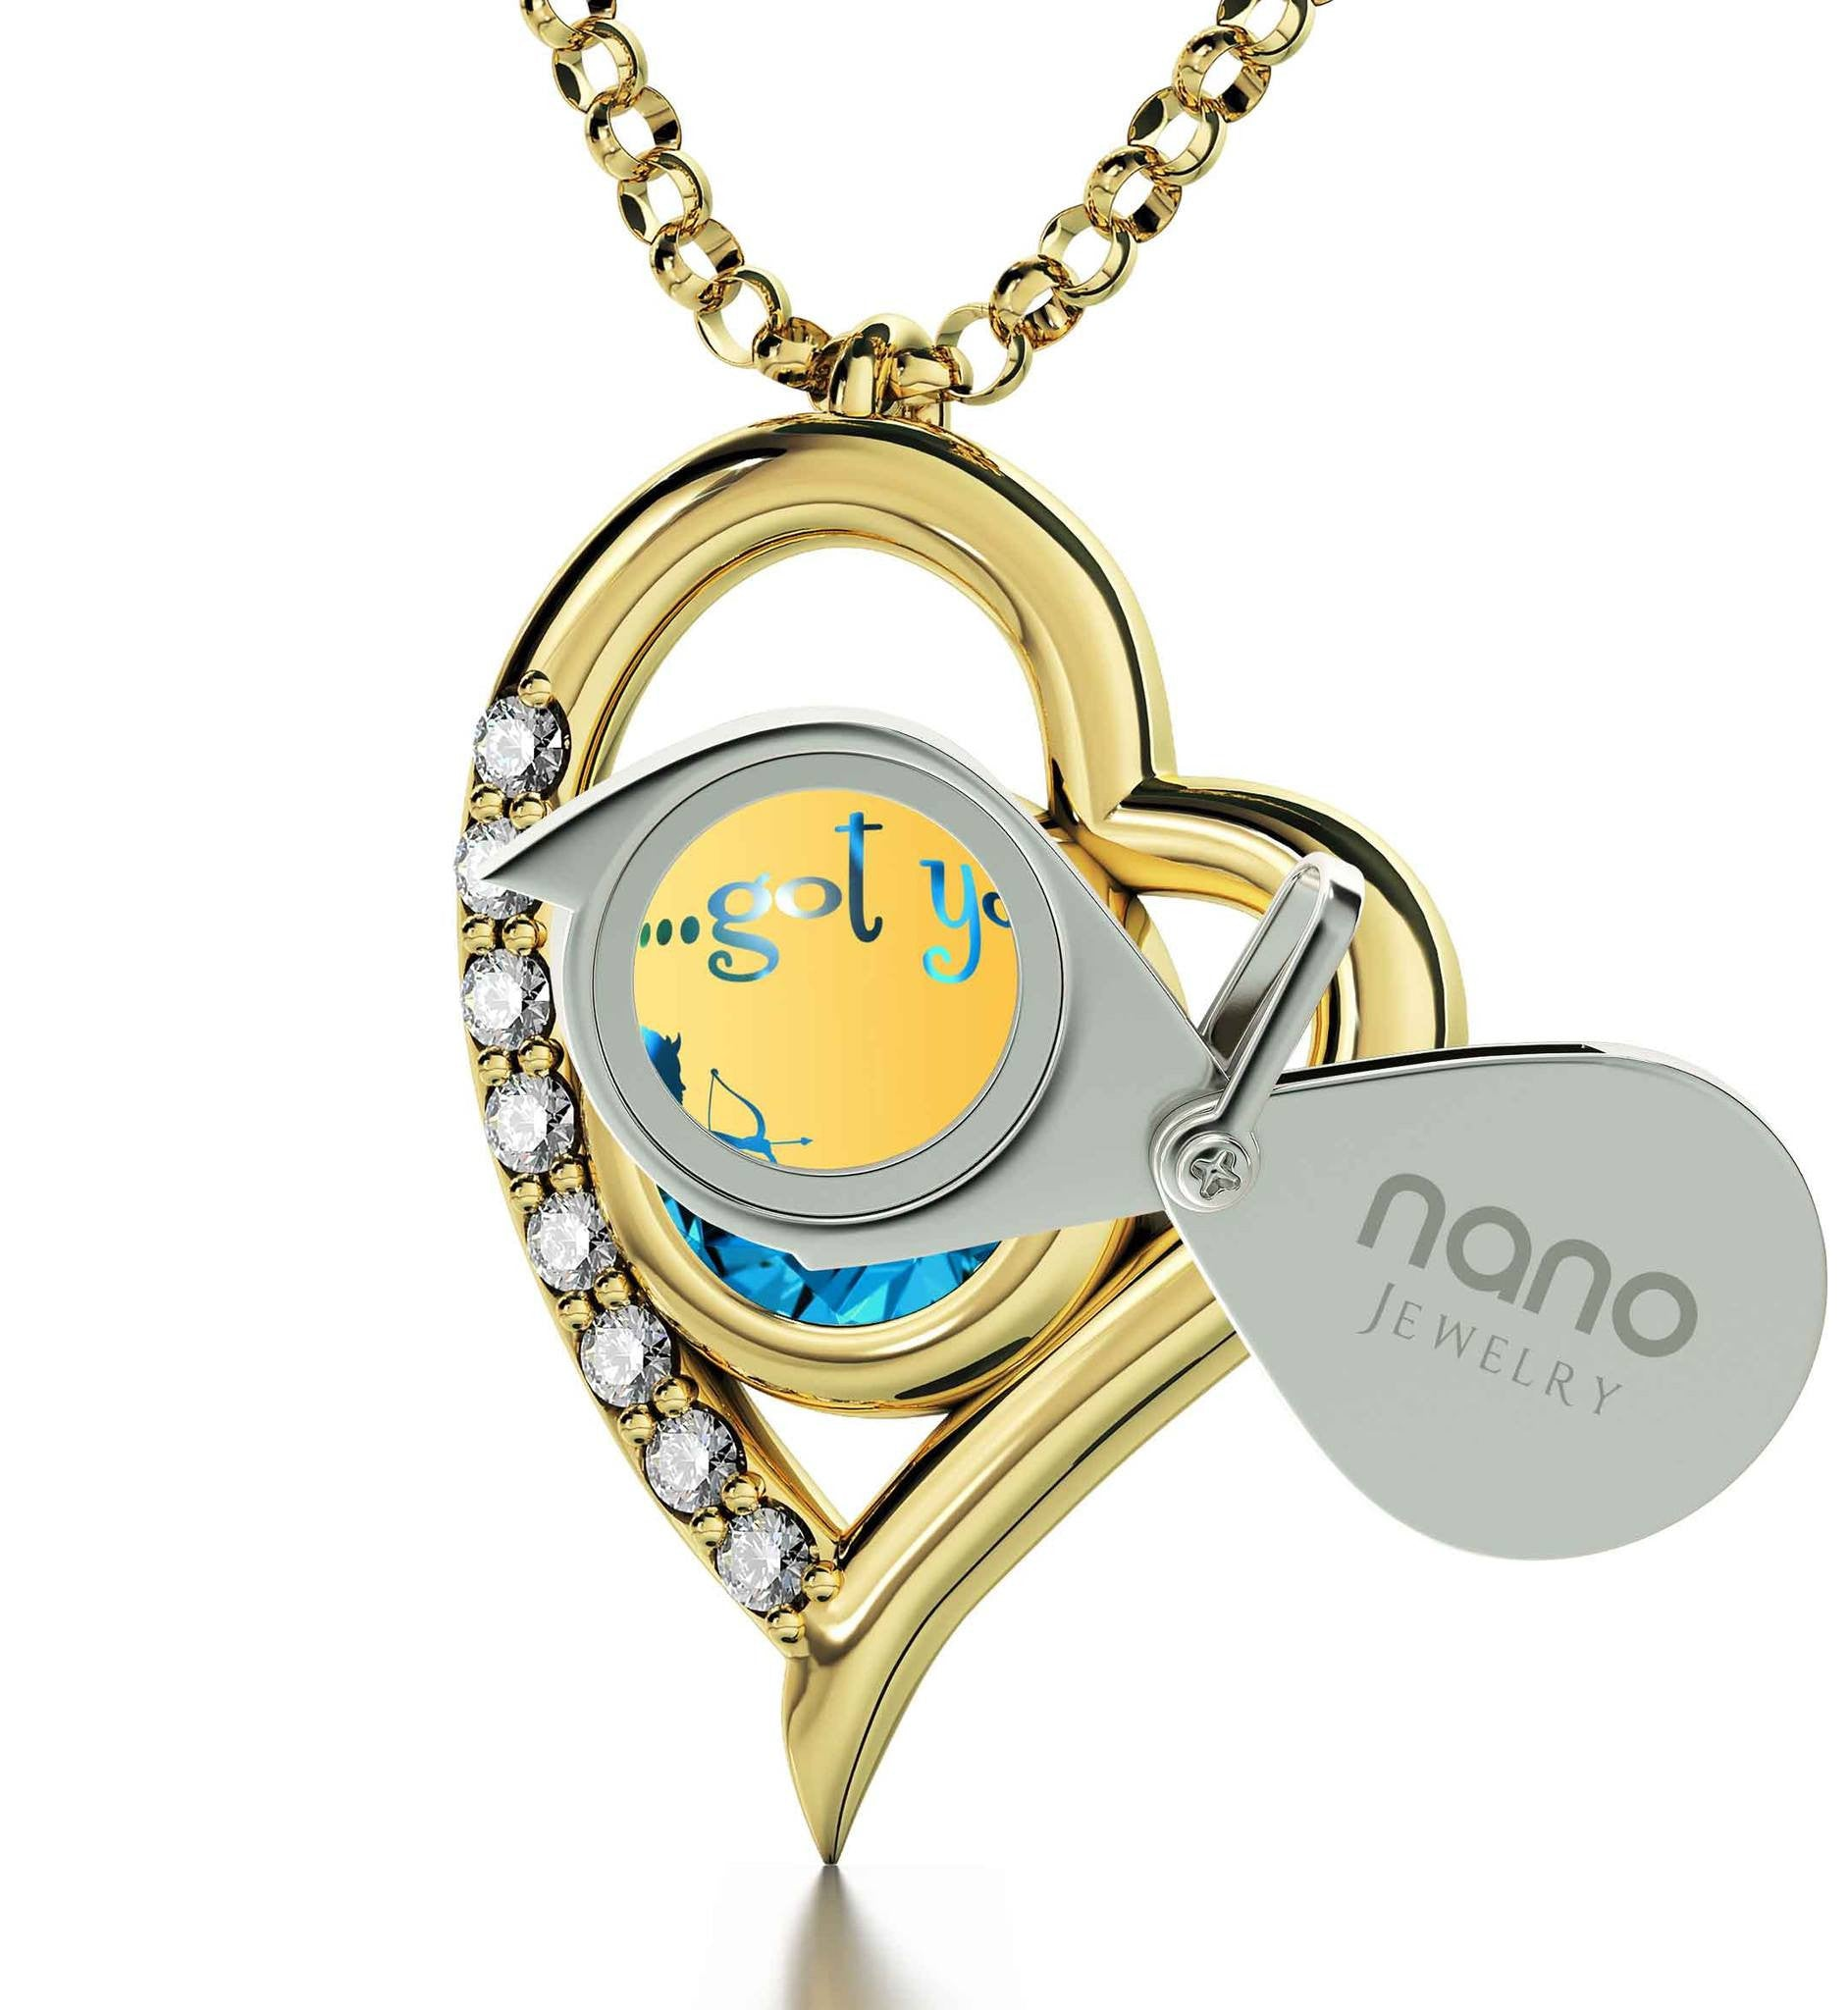 """Good Presents for Girlfriend,Heart Frame Gold Filled Engraved Necklace, Women's Gifts for Christmas, by Nano Jewelry"""